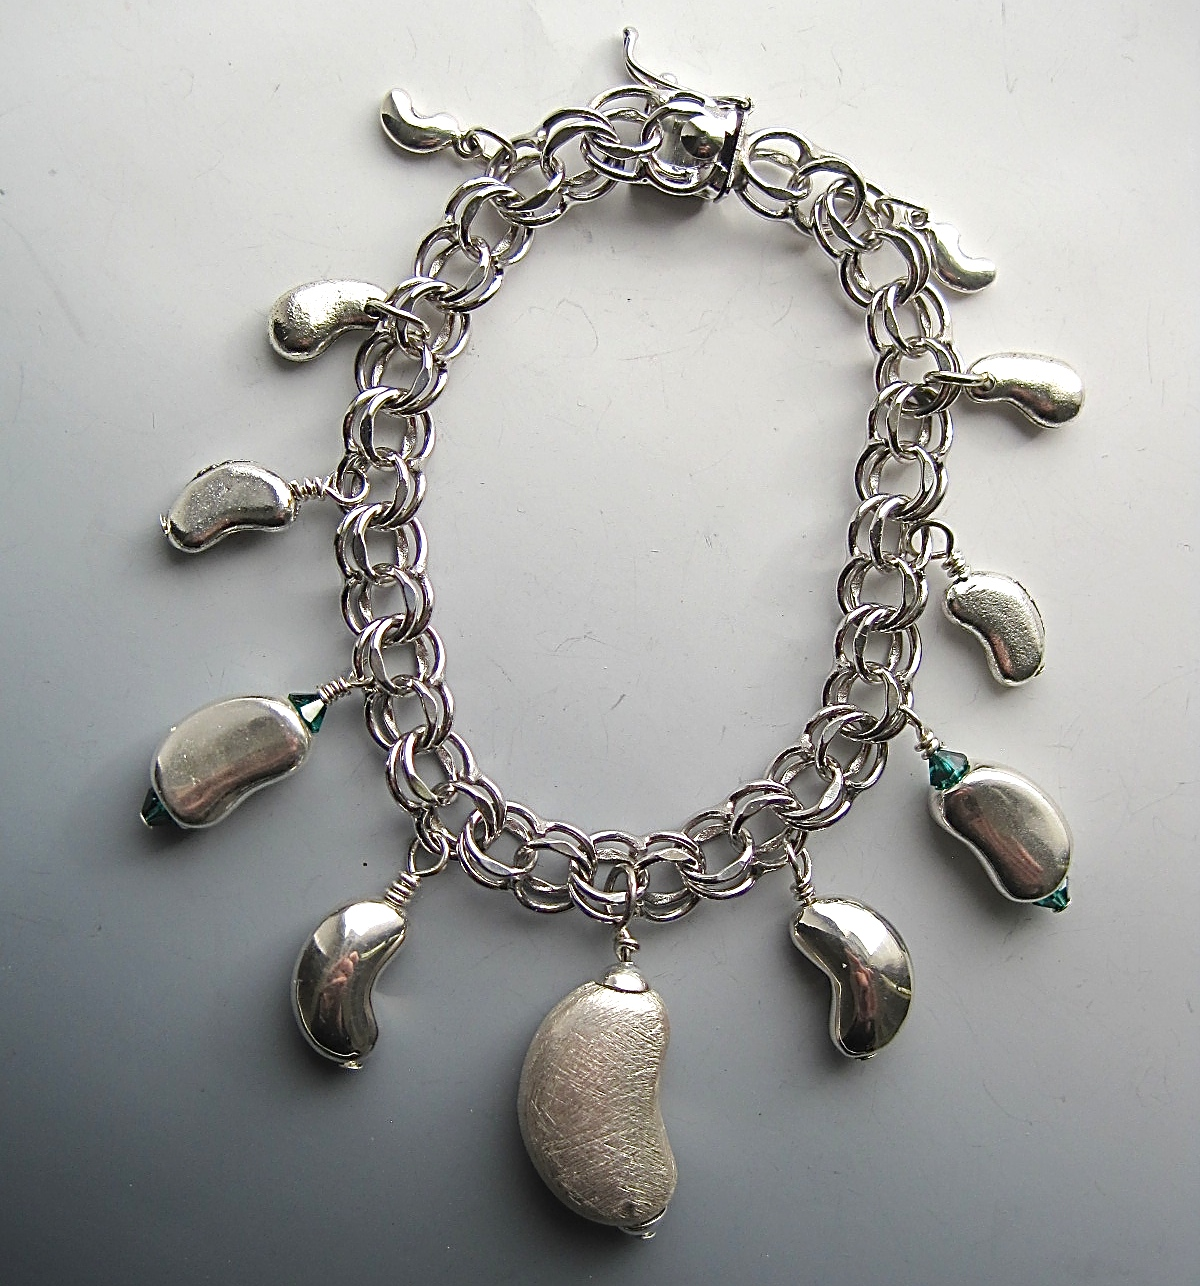 Charms And Bracelets: One-of-a-Kind-Sterling And Pewter Kidney Charm Bracelet #1